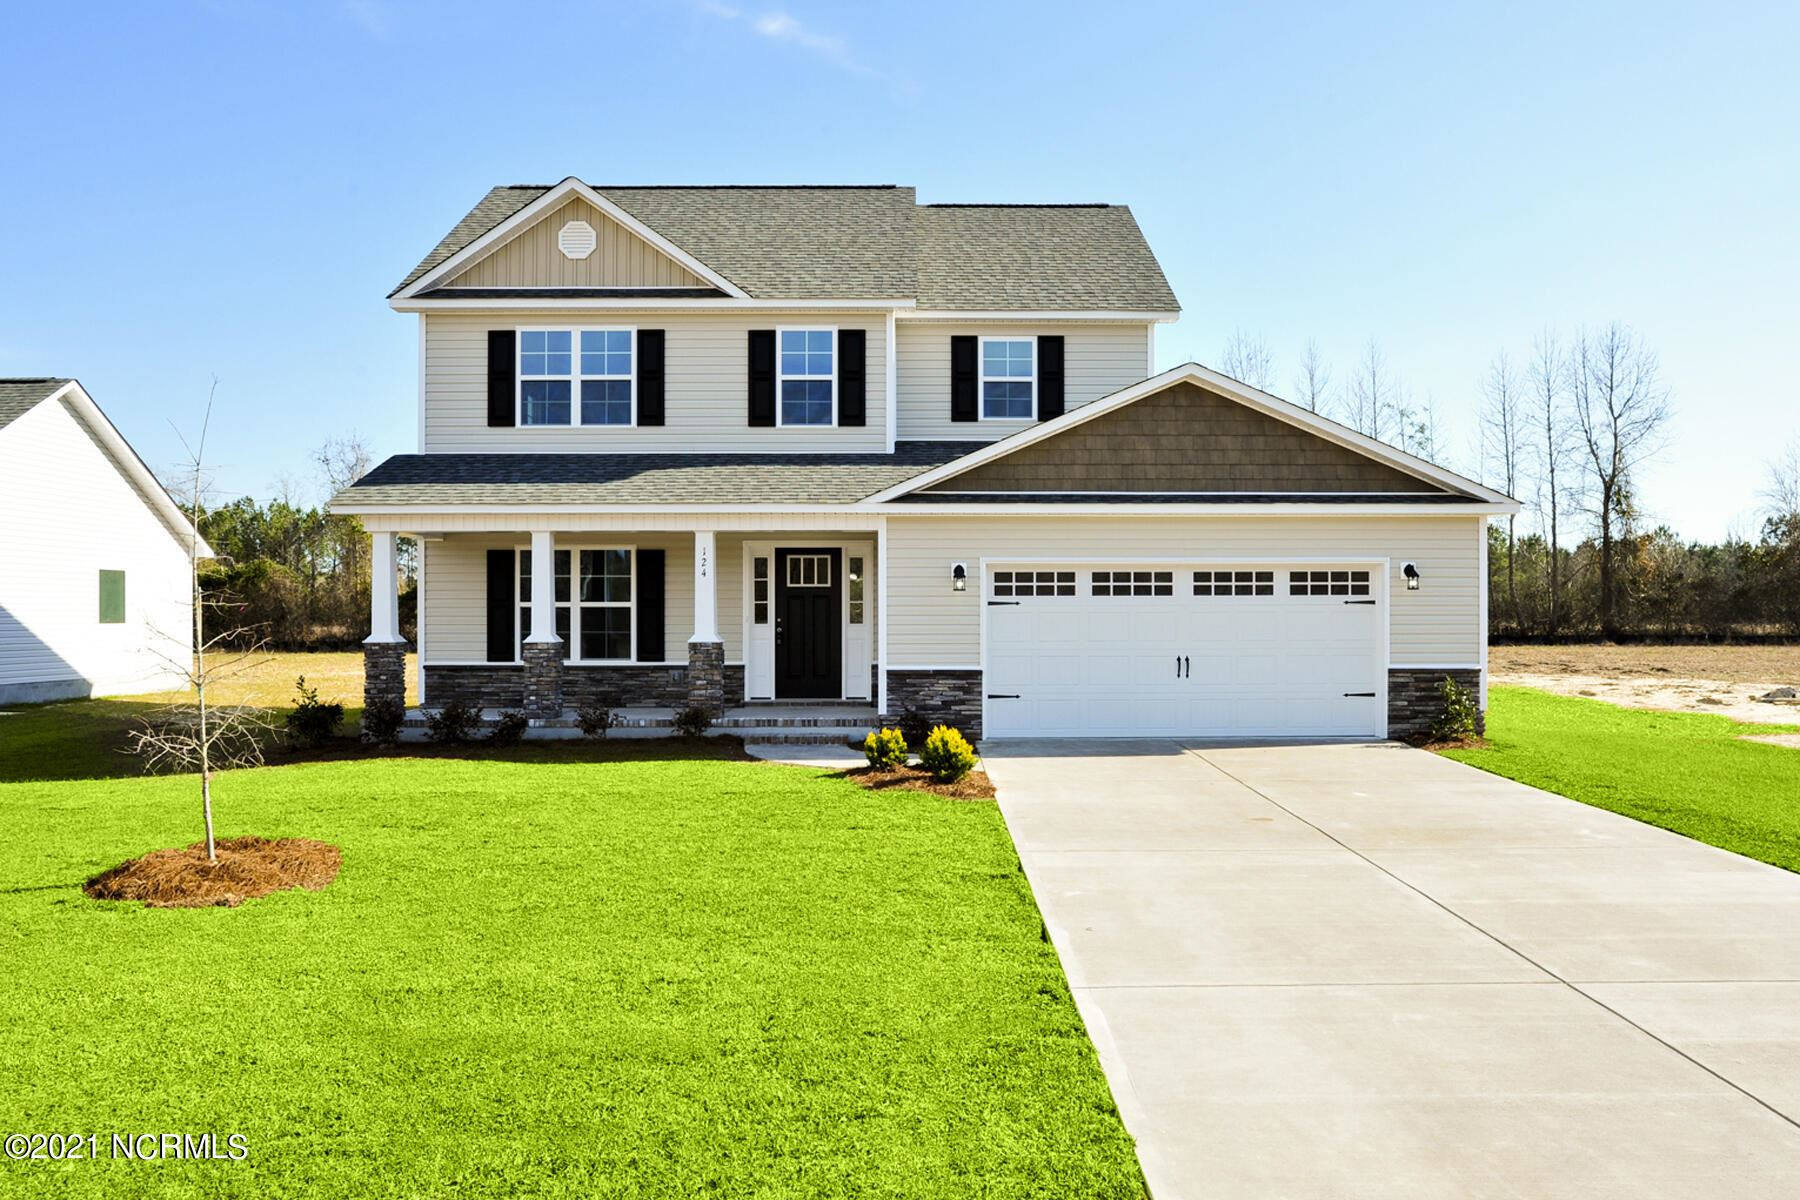 Photo of 418 Duster Lane, Richlands, NC 28574 (MLS # 100291875)